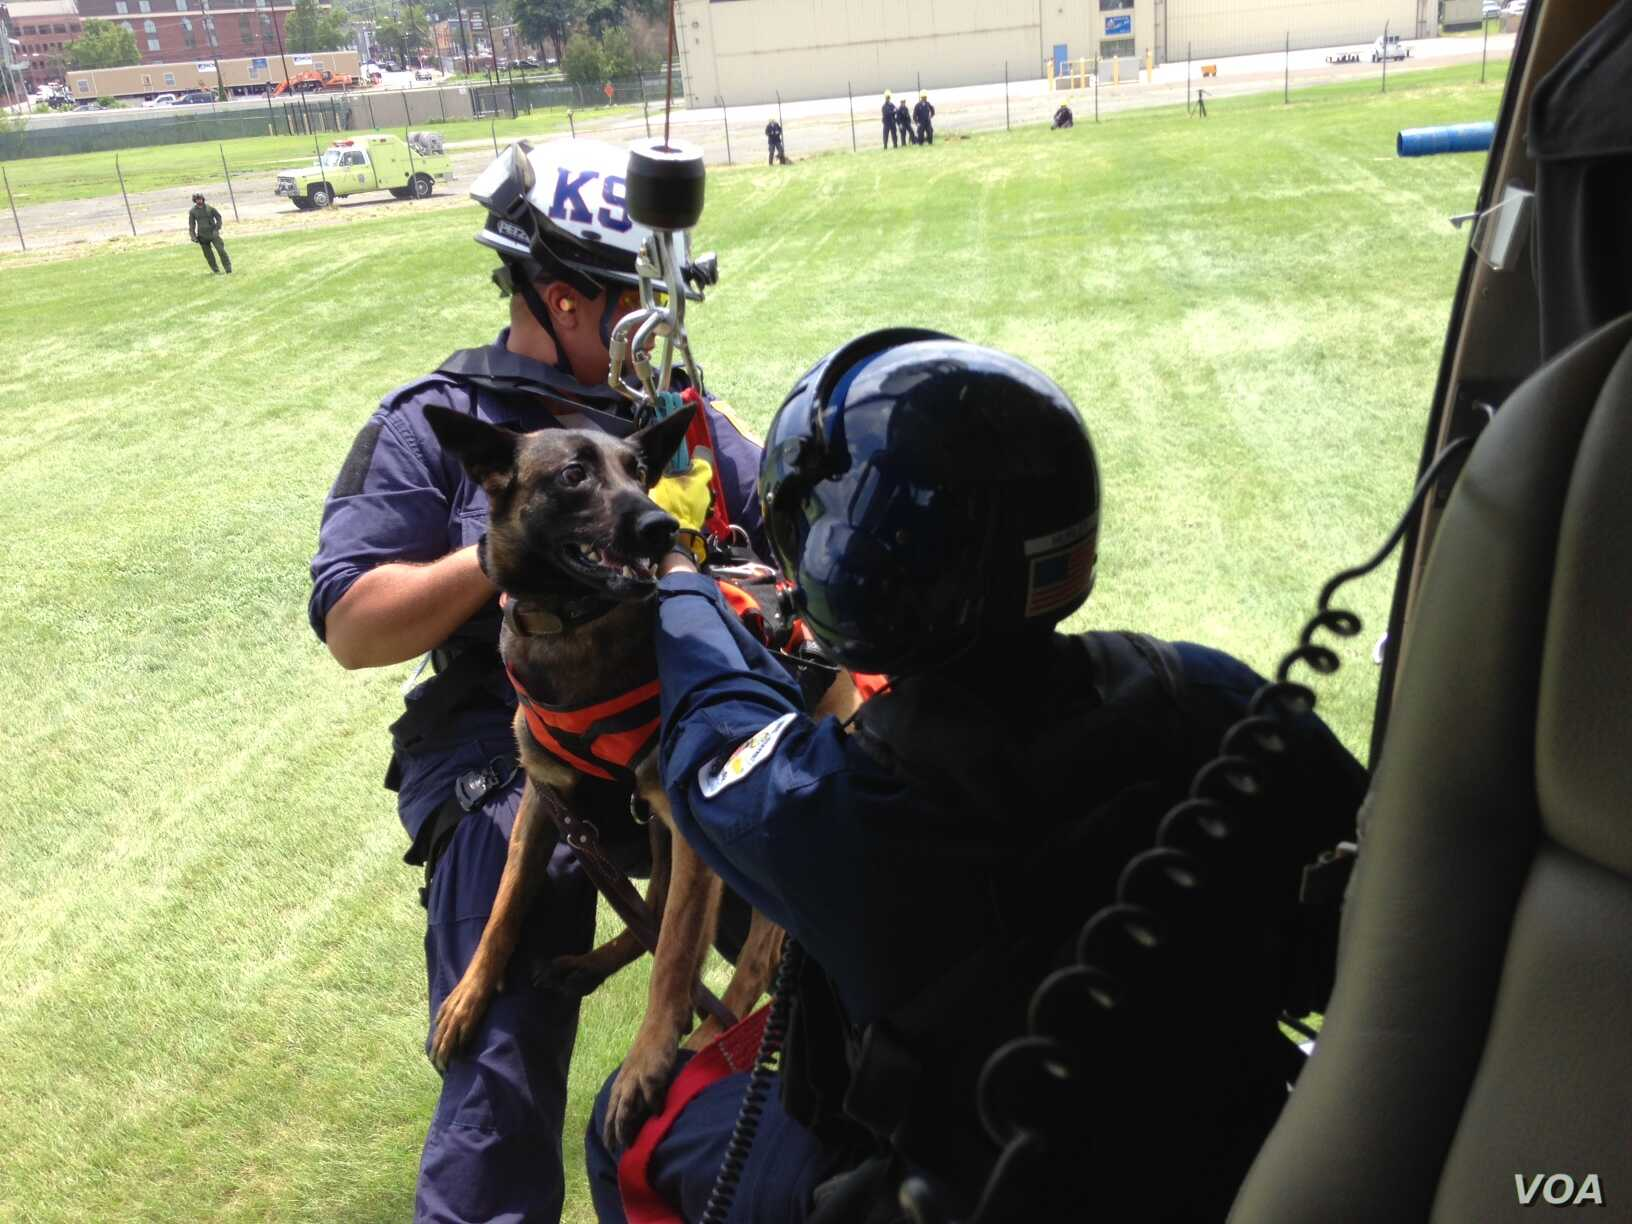 A search-and-rescue dog and its trainer are hoisted up to a helicopter as part of their training at the U.S. Park Police Aviation Section in Washington, July 11, 2015. (Credit: Julie Taboh)